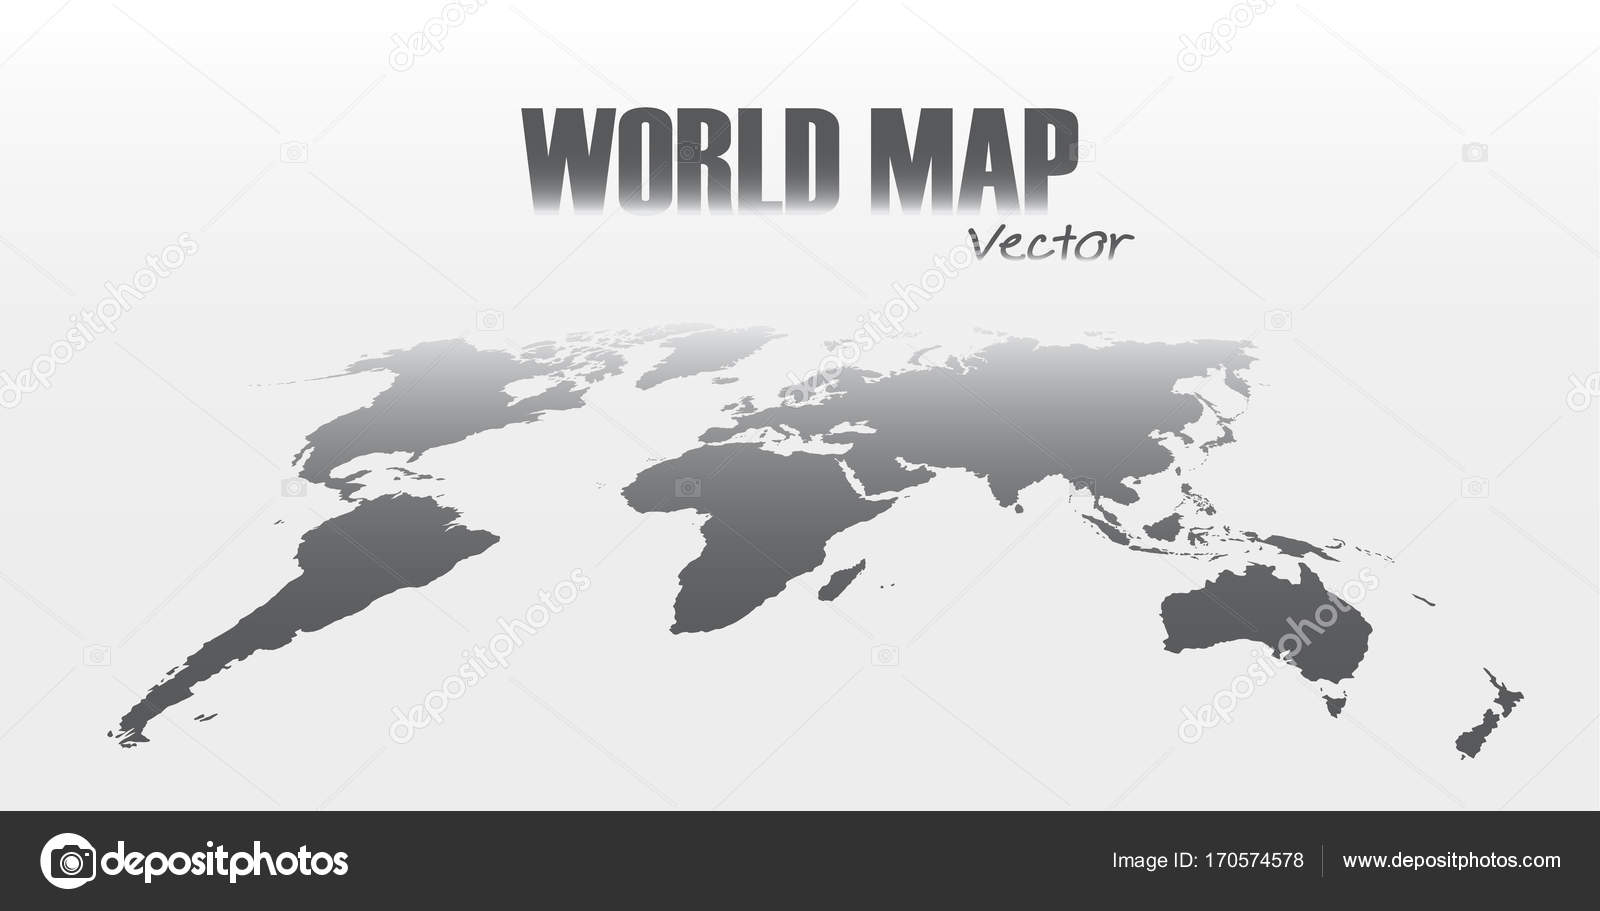 Perspective world map on gray background stock vector perspective world map on gray background stock vector gumiabroncs Choice Image